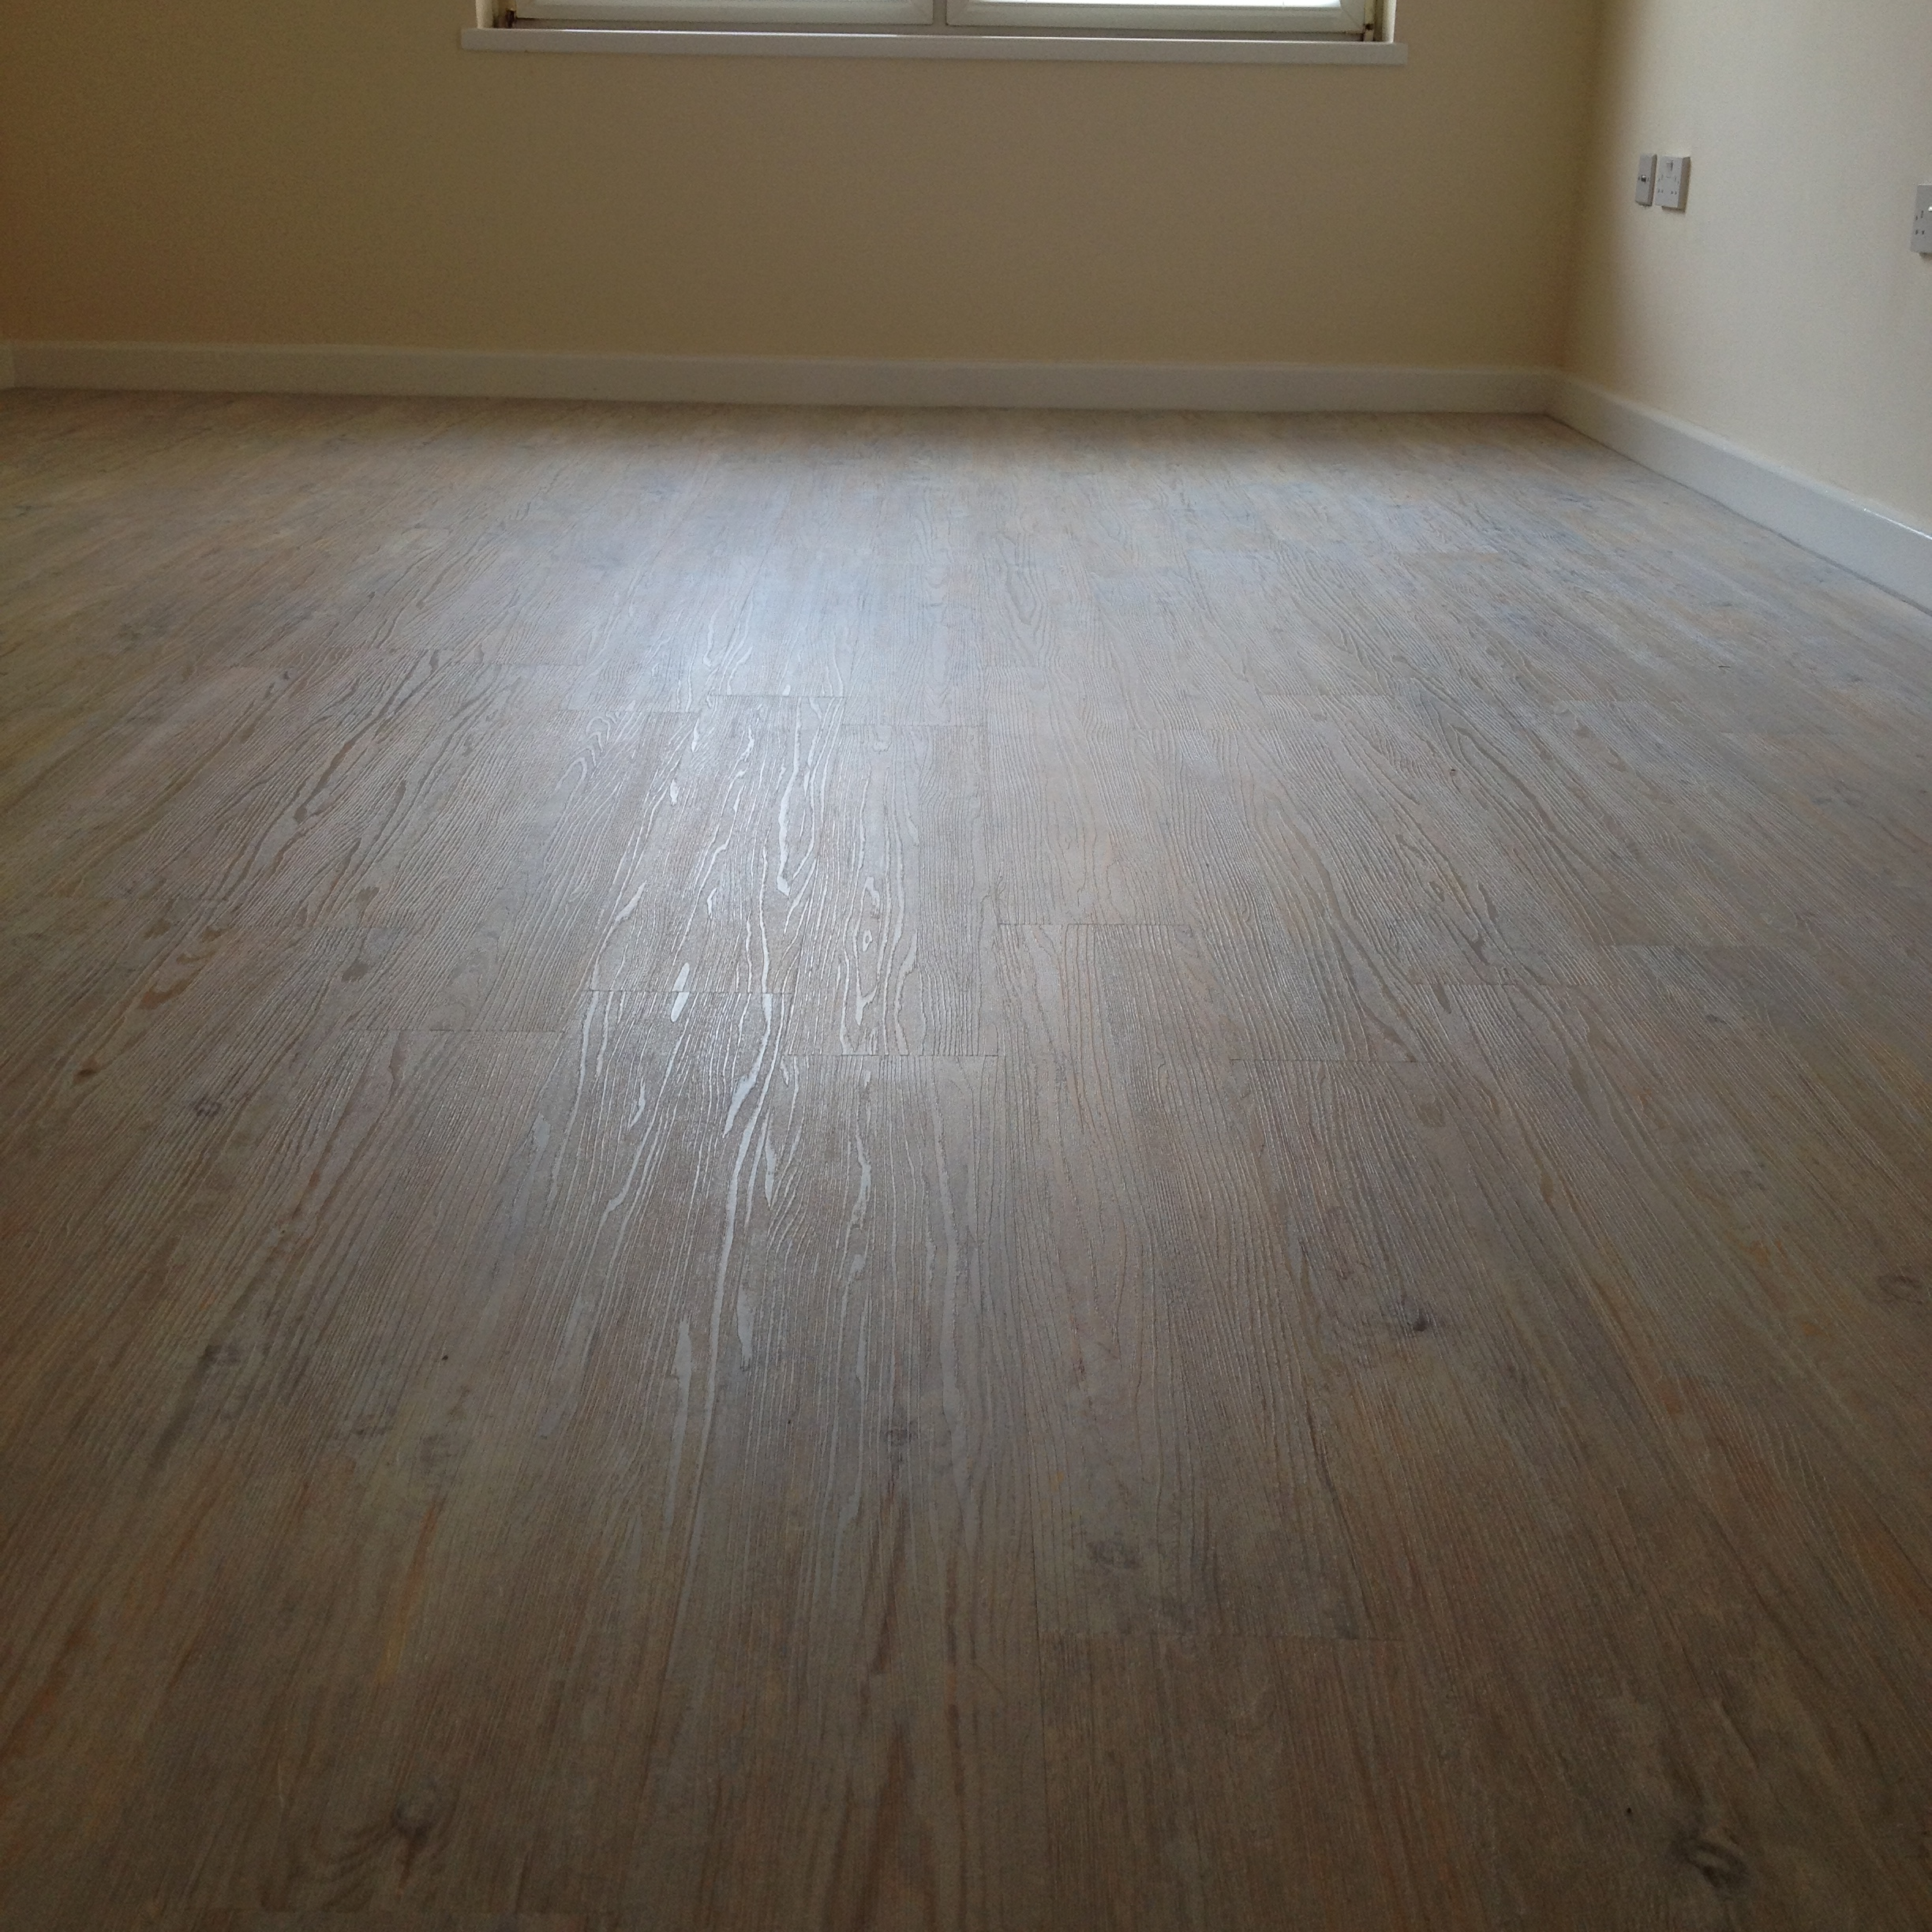 Camaro-Loc LVT Flooring, Smoke Limed Oak (2).JPG